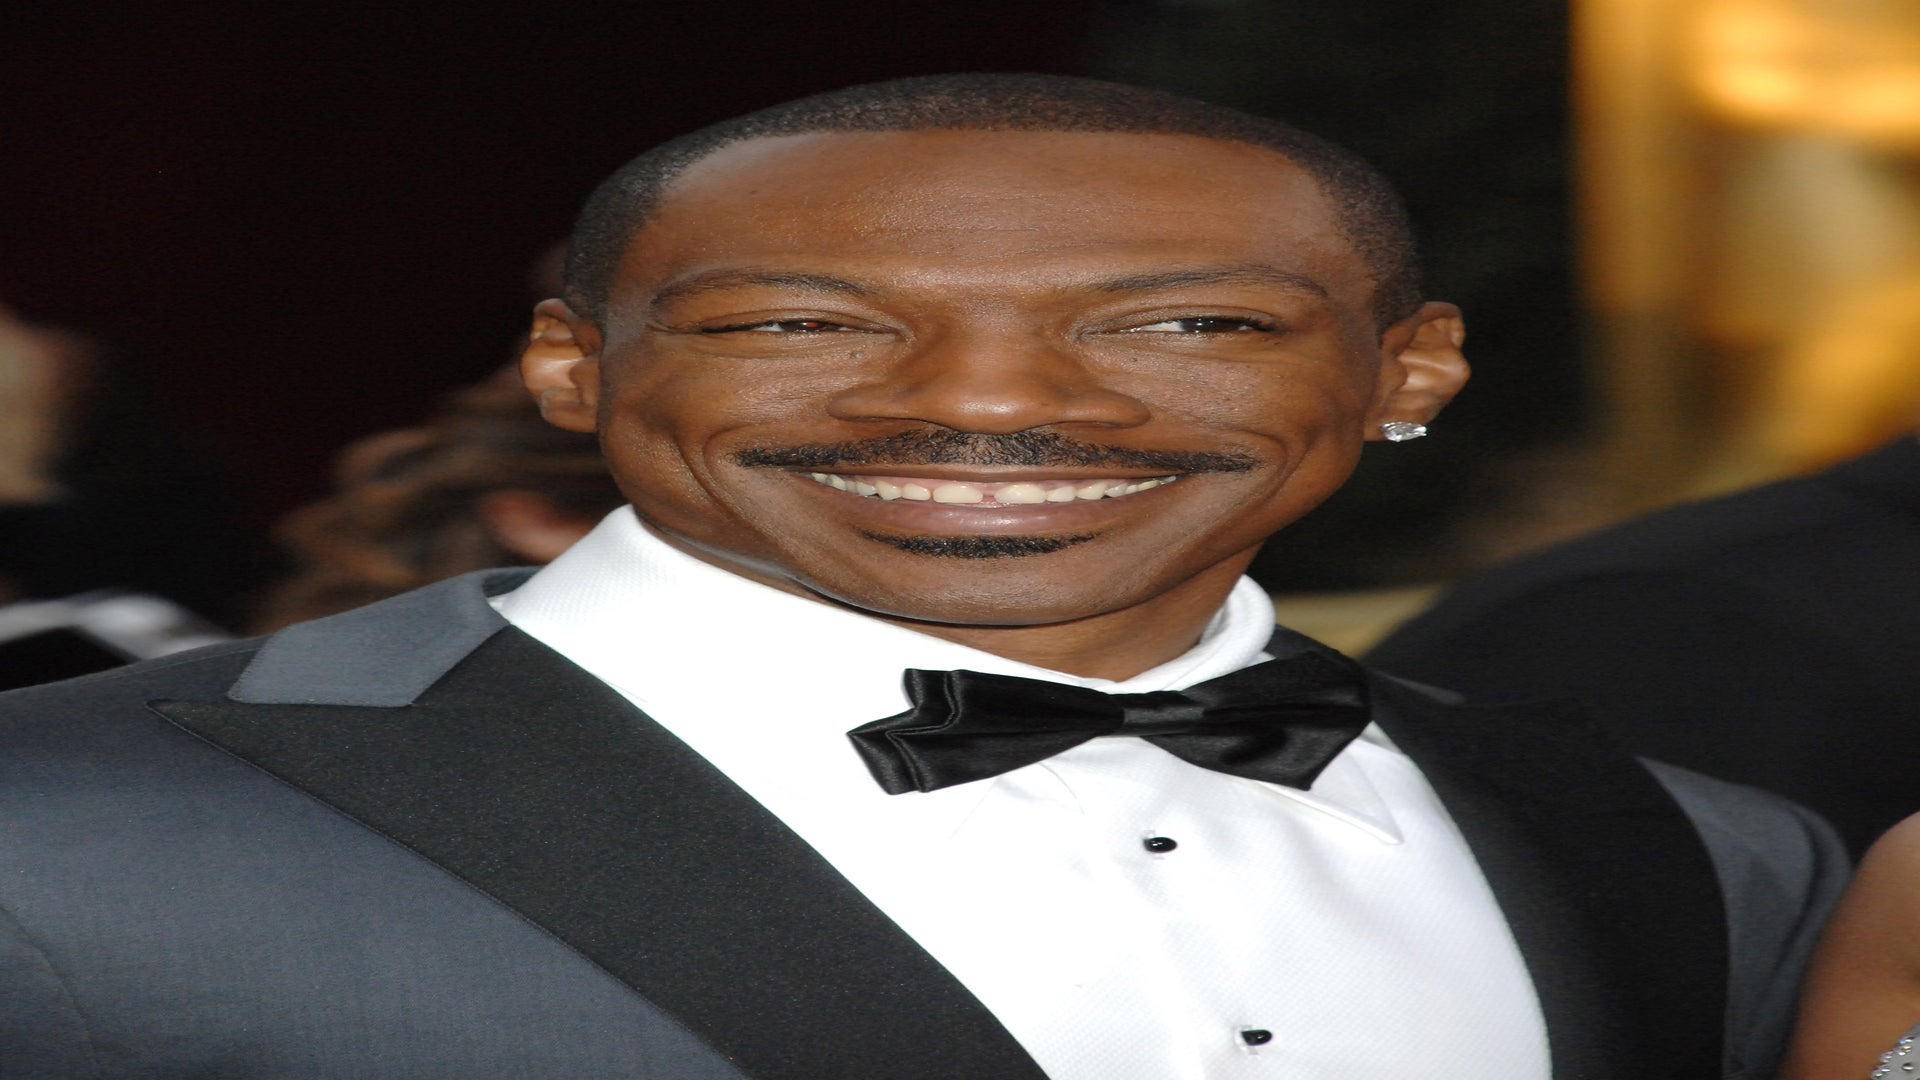 Eddie Murphy to Receive Nation's Highest Award for Comedy, Will be Honored by Tracy Morgan